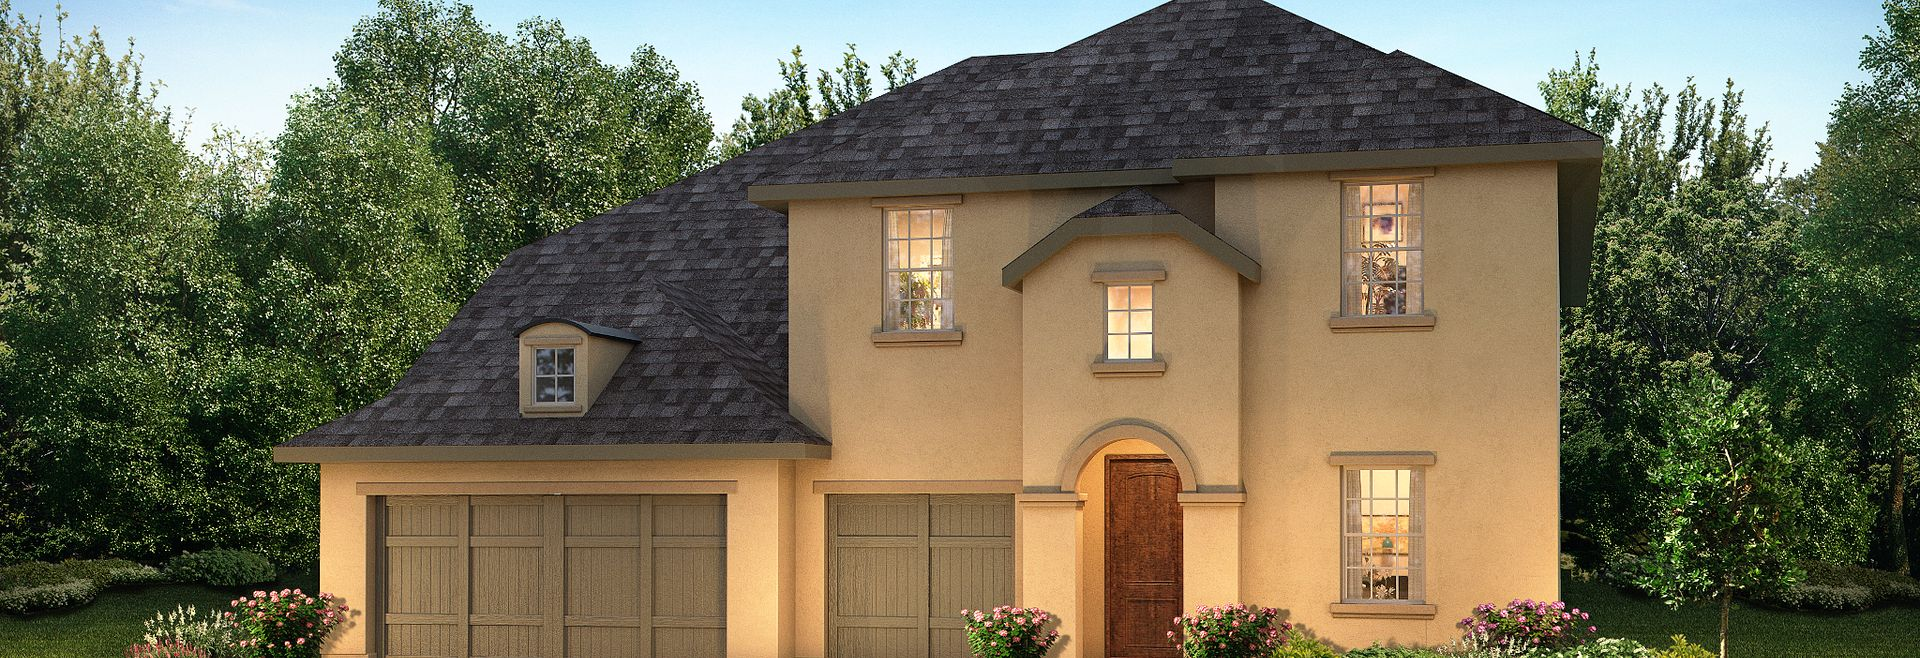 Plan 5069 French Exterior